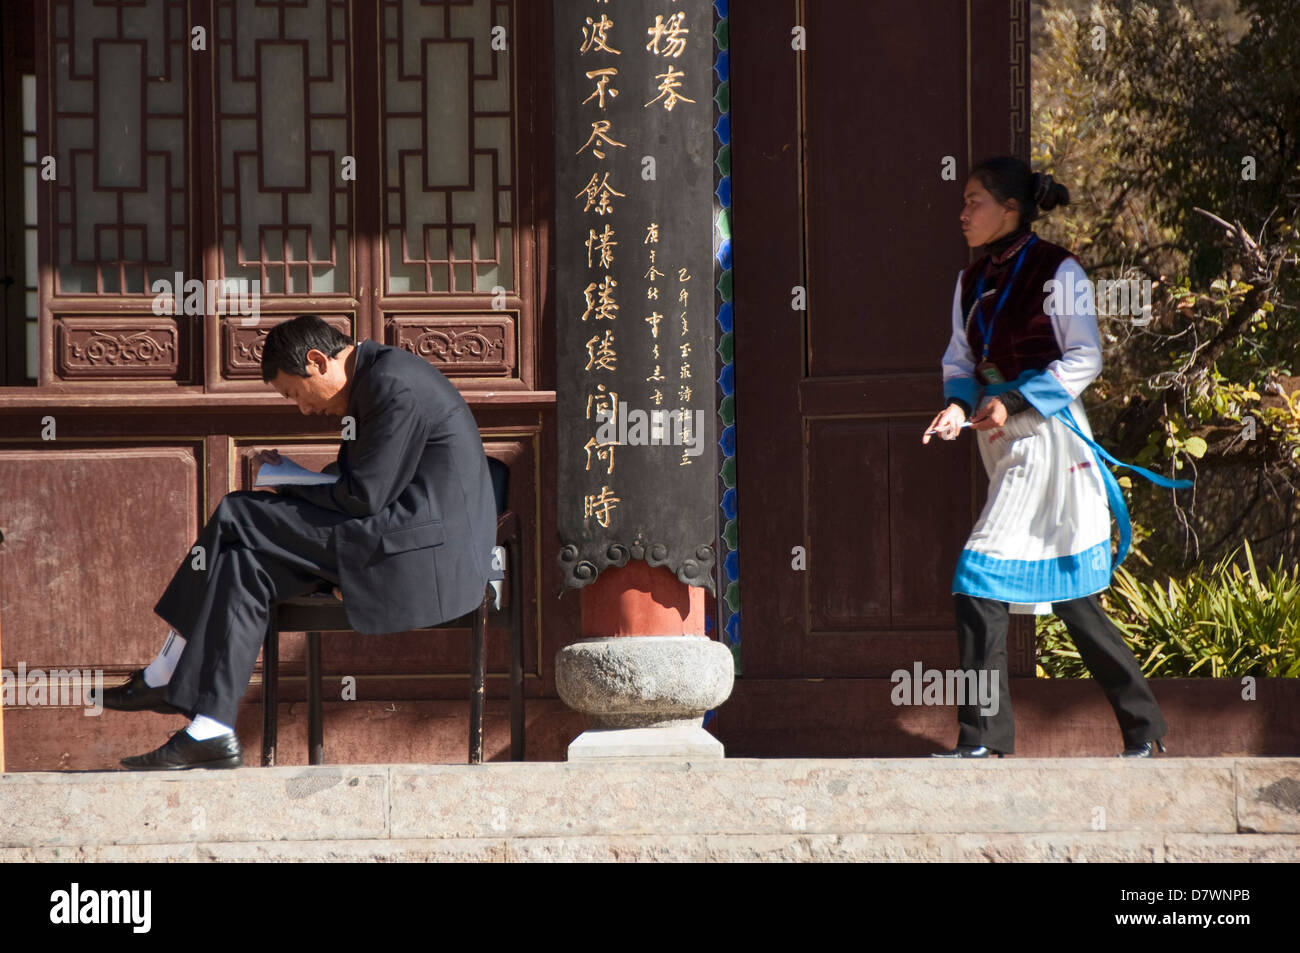 Tea Shop Stock Photos & Tea Shop Stock Images - Alamy